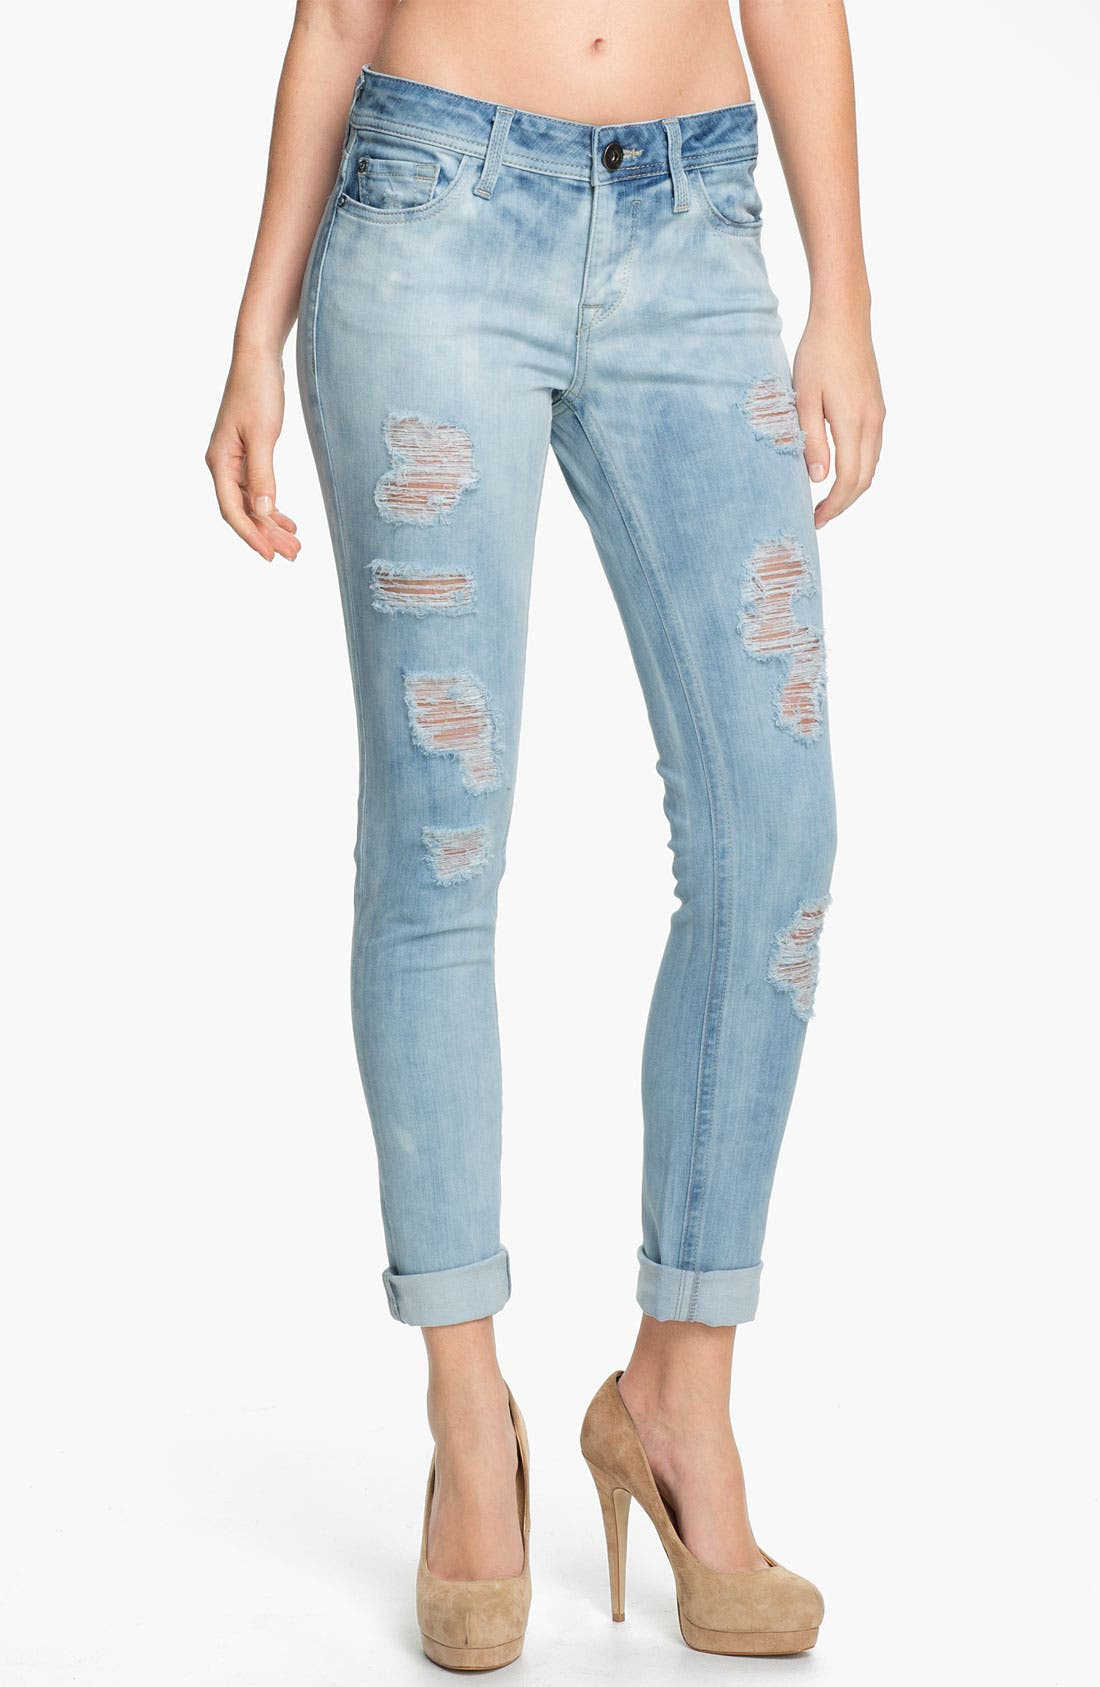 Alternate Image 1 Selected - DL1961 'Amanda'  X-Fit Stretch Destroyed Denim Skinny Jeans (Frenzy)